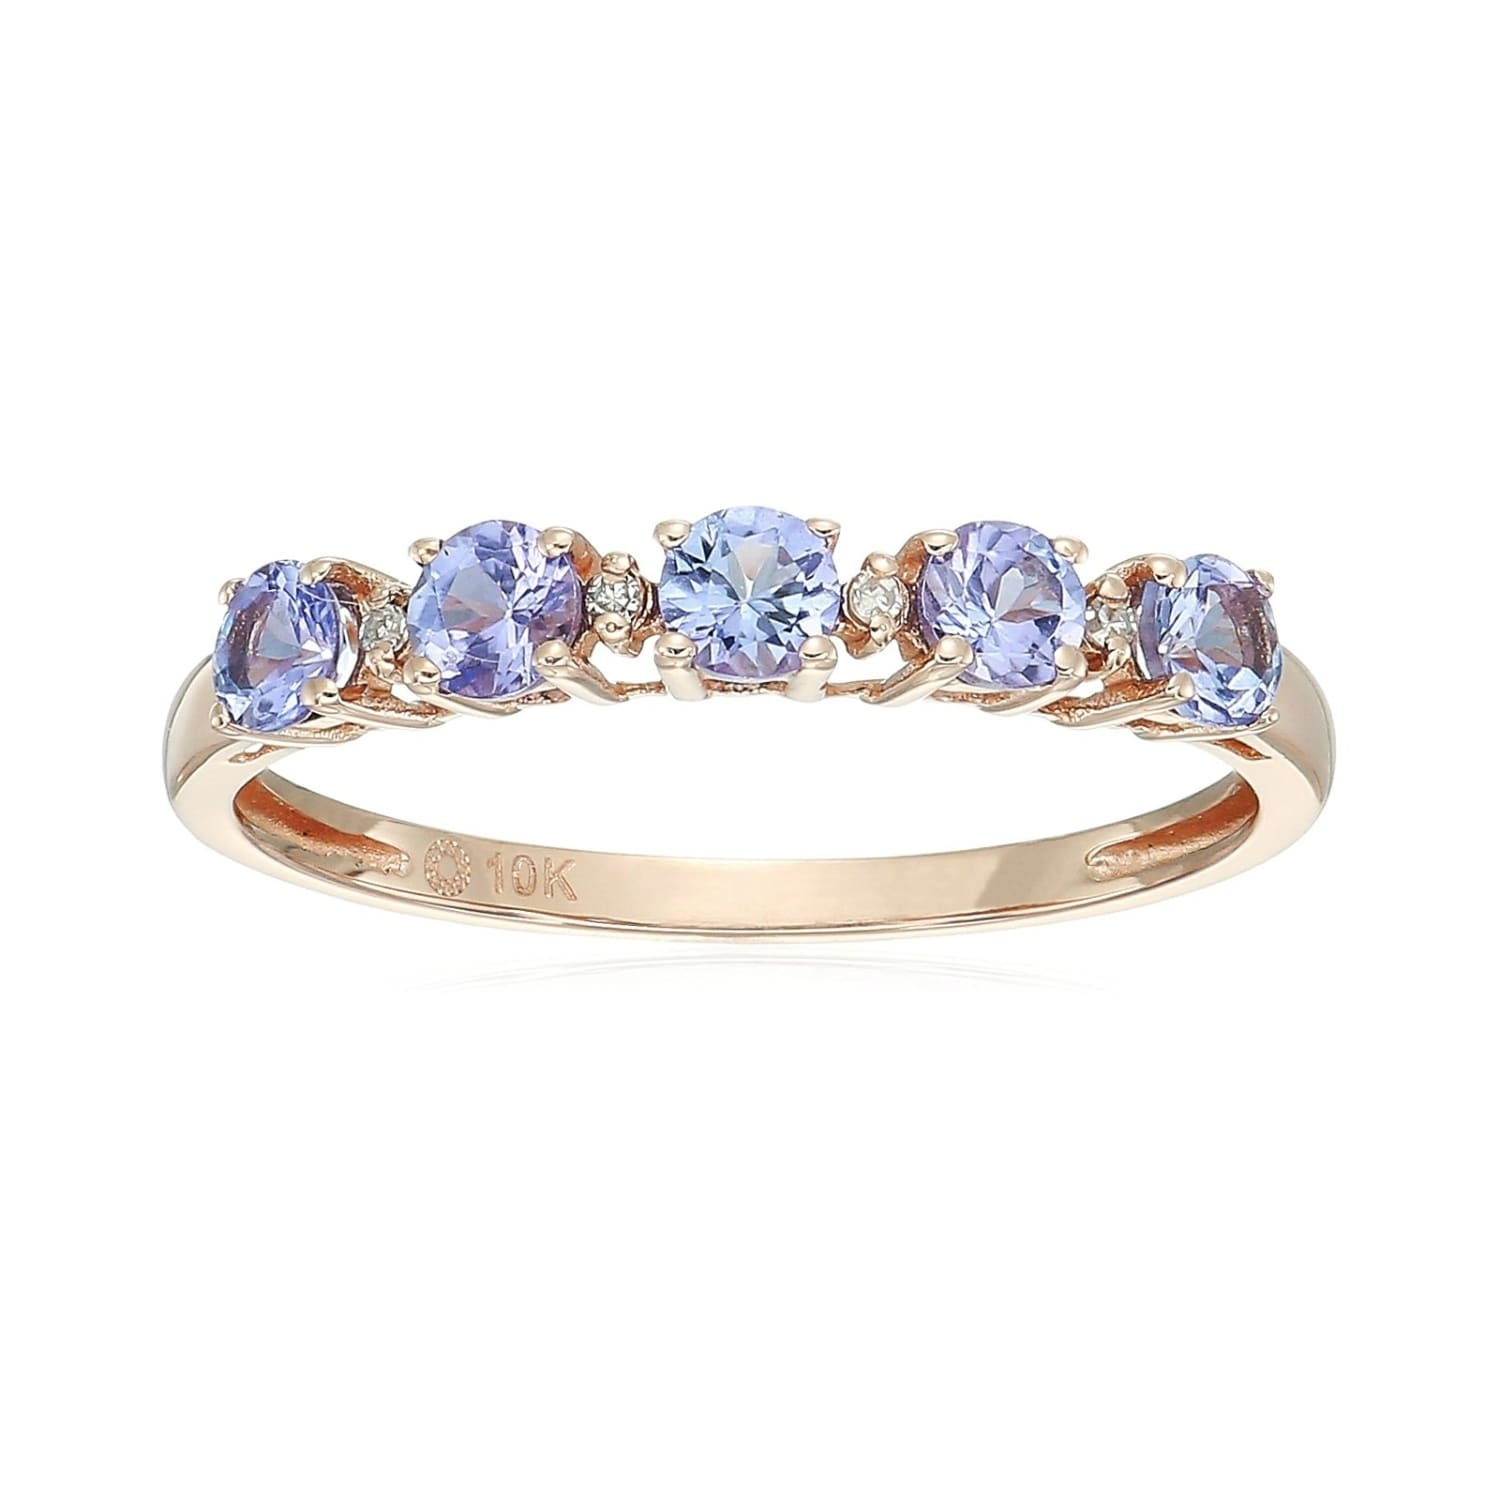 stone precious amp tanzanite diamond engagement ring white image jewellery gold rings